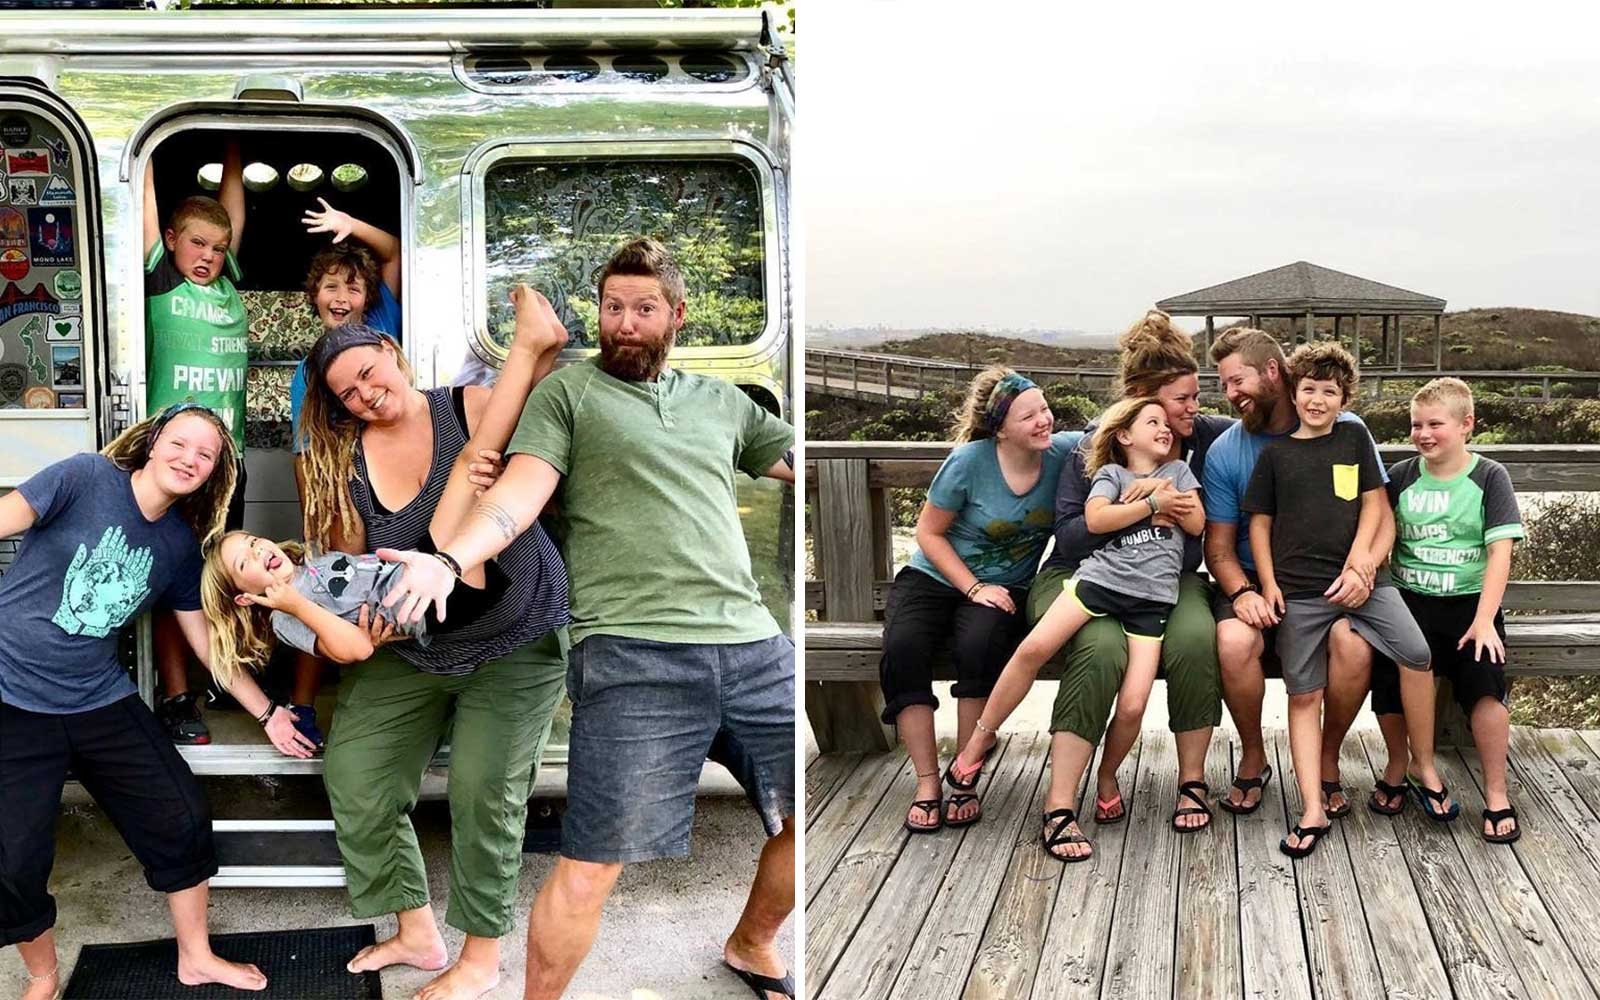 This Family of 6 Sold Their House to Live Life on the Road in a Tricked-out Airstream